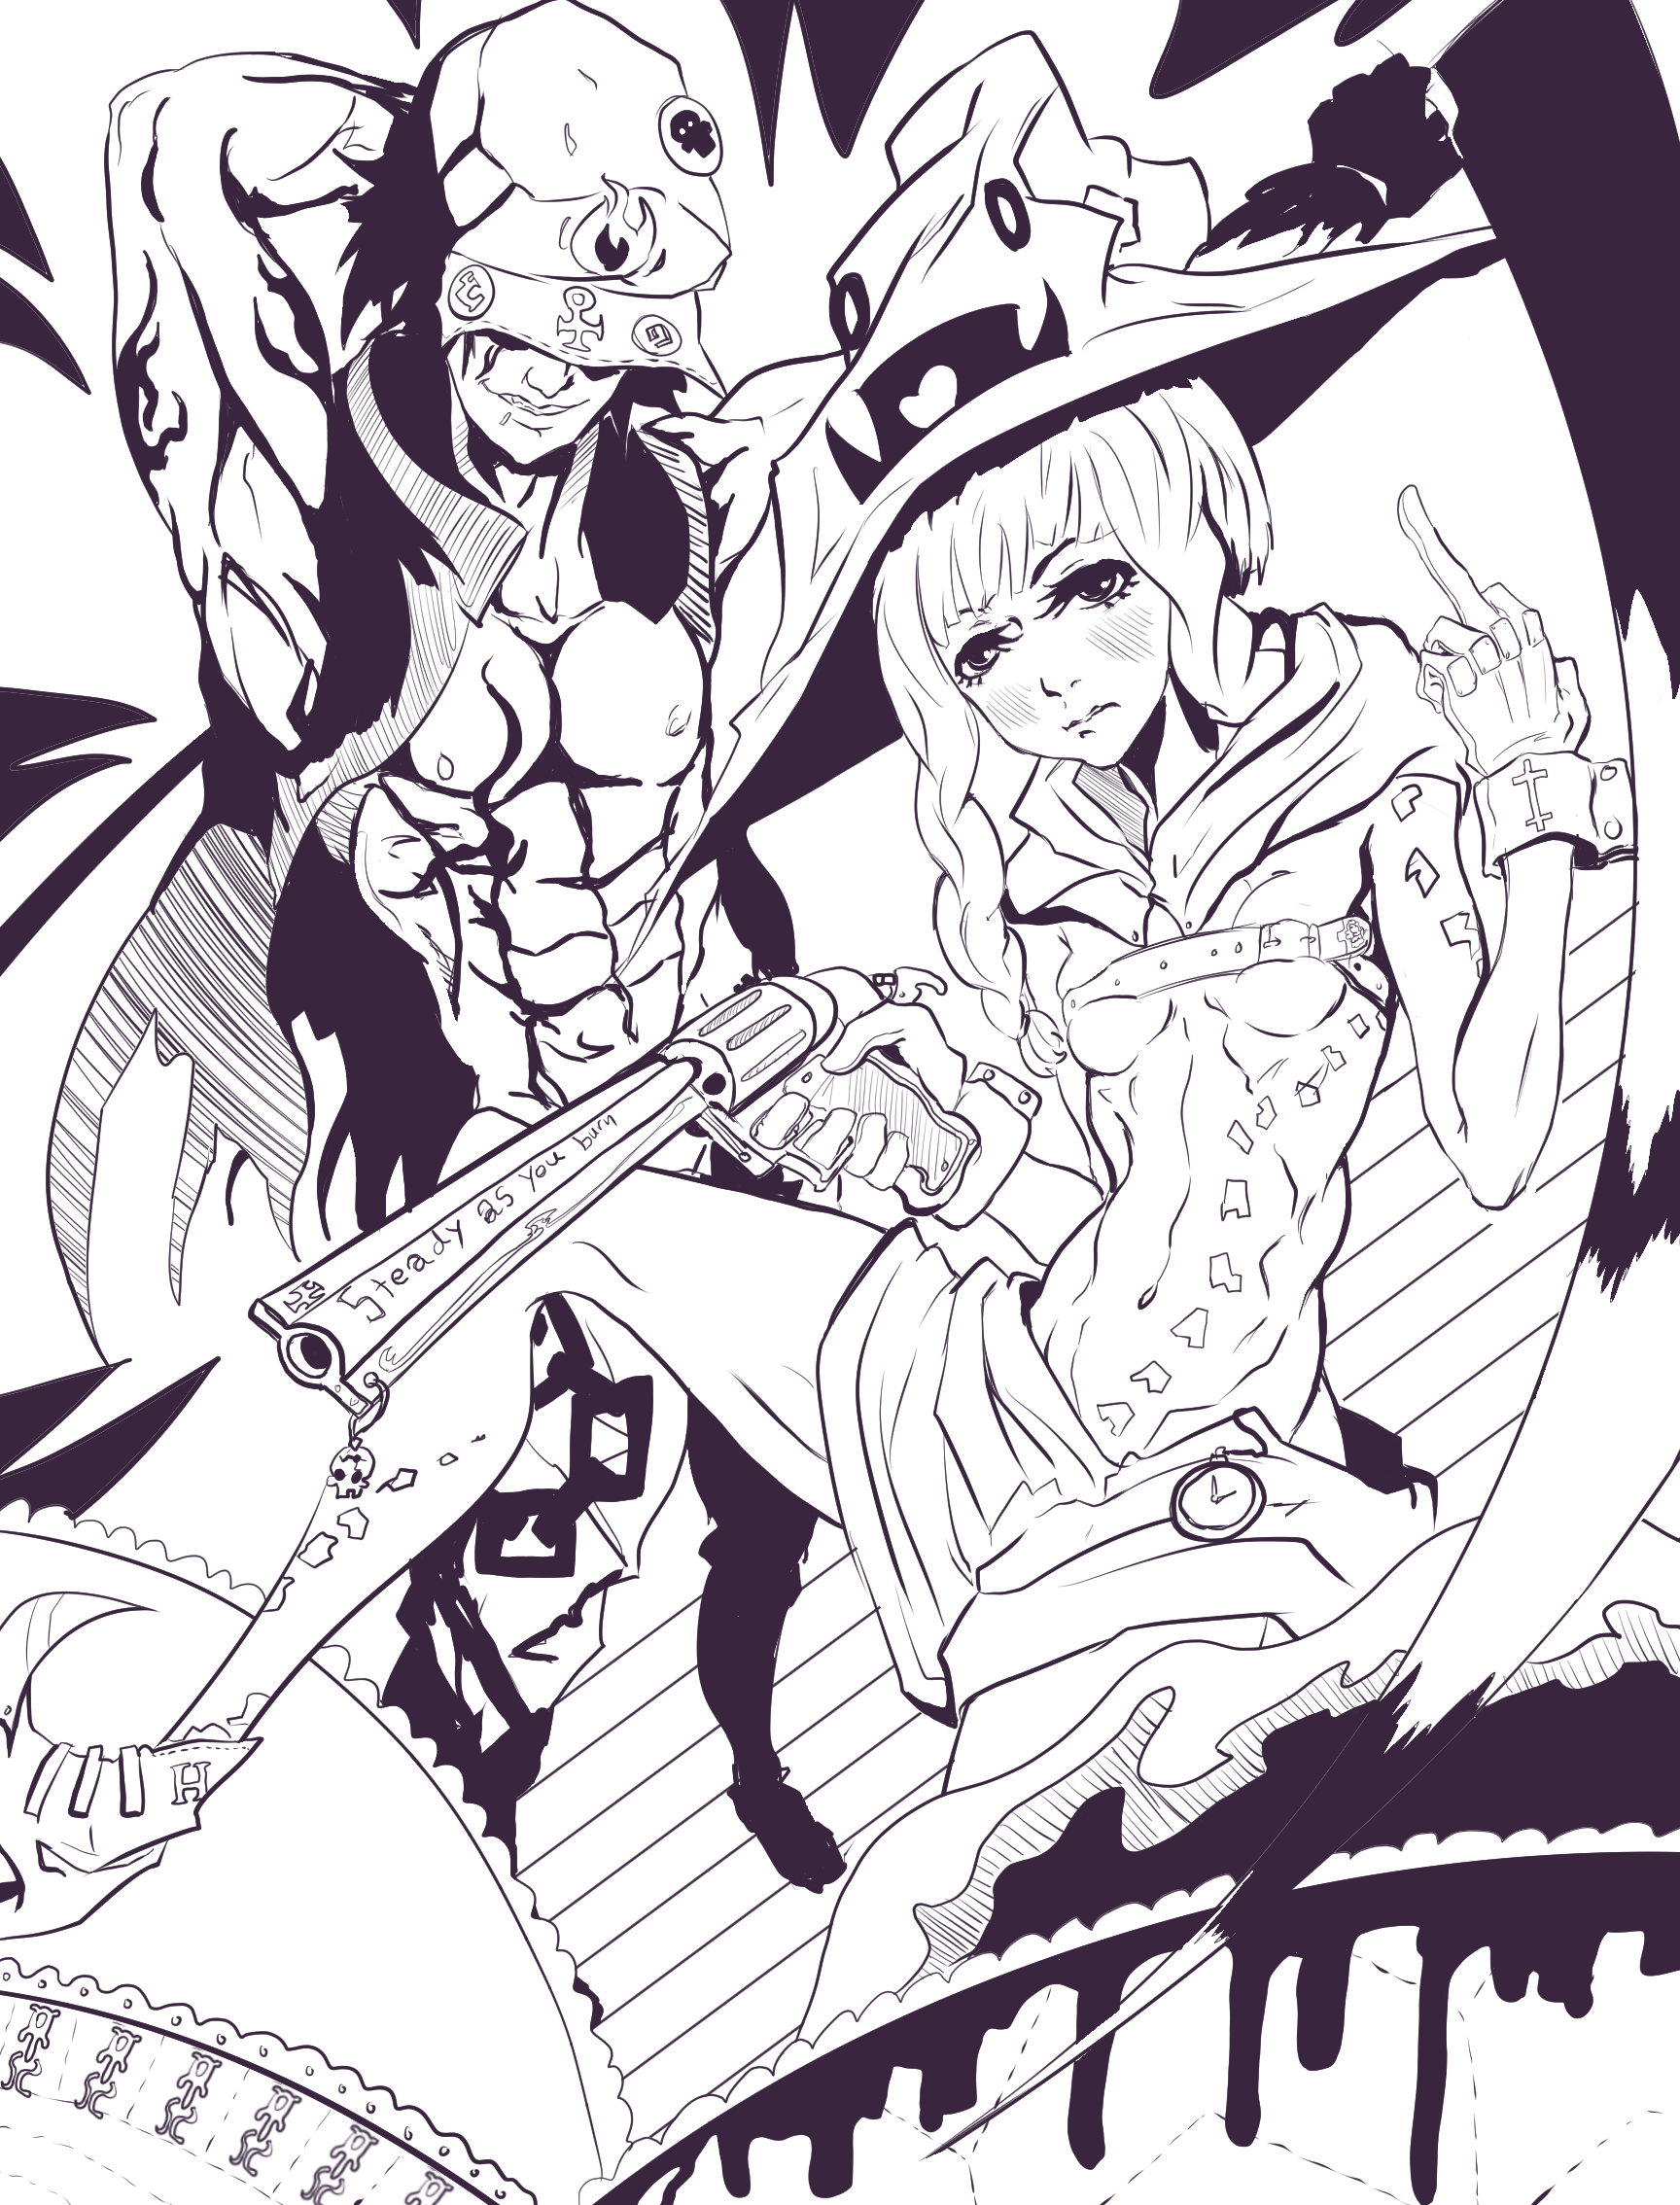 Done with it LineArt